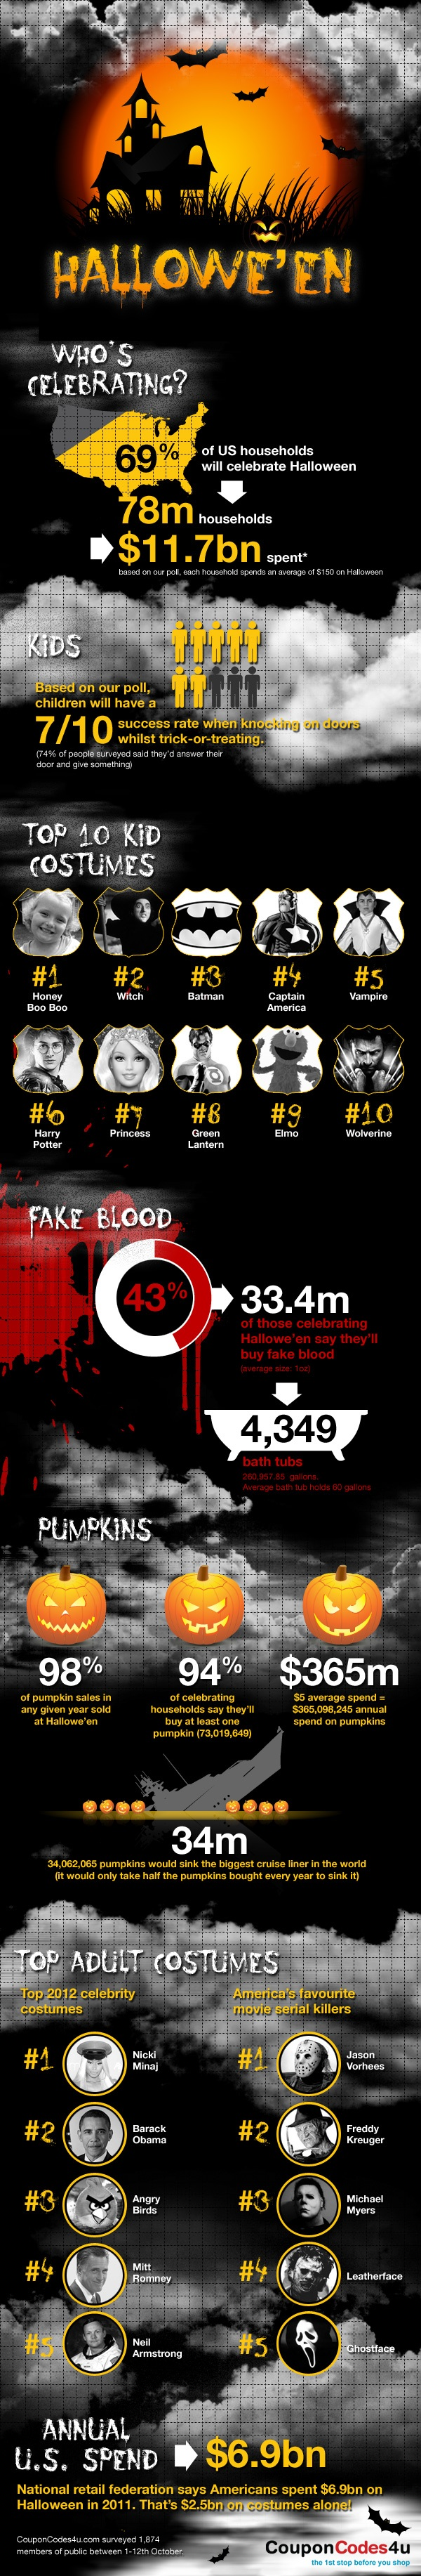 Halloween 2012: Facts and Figures